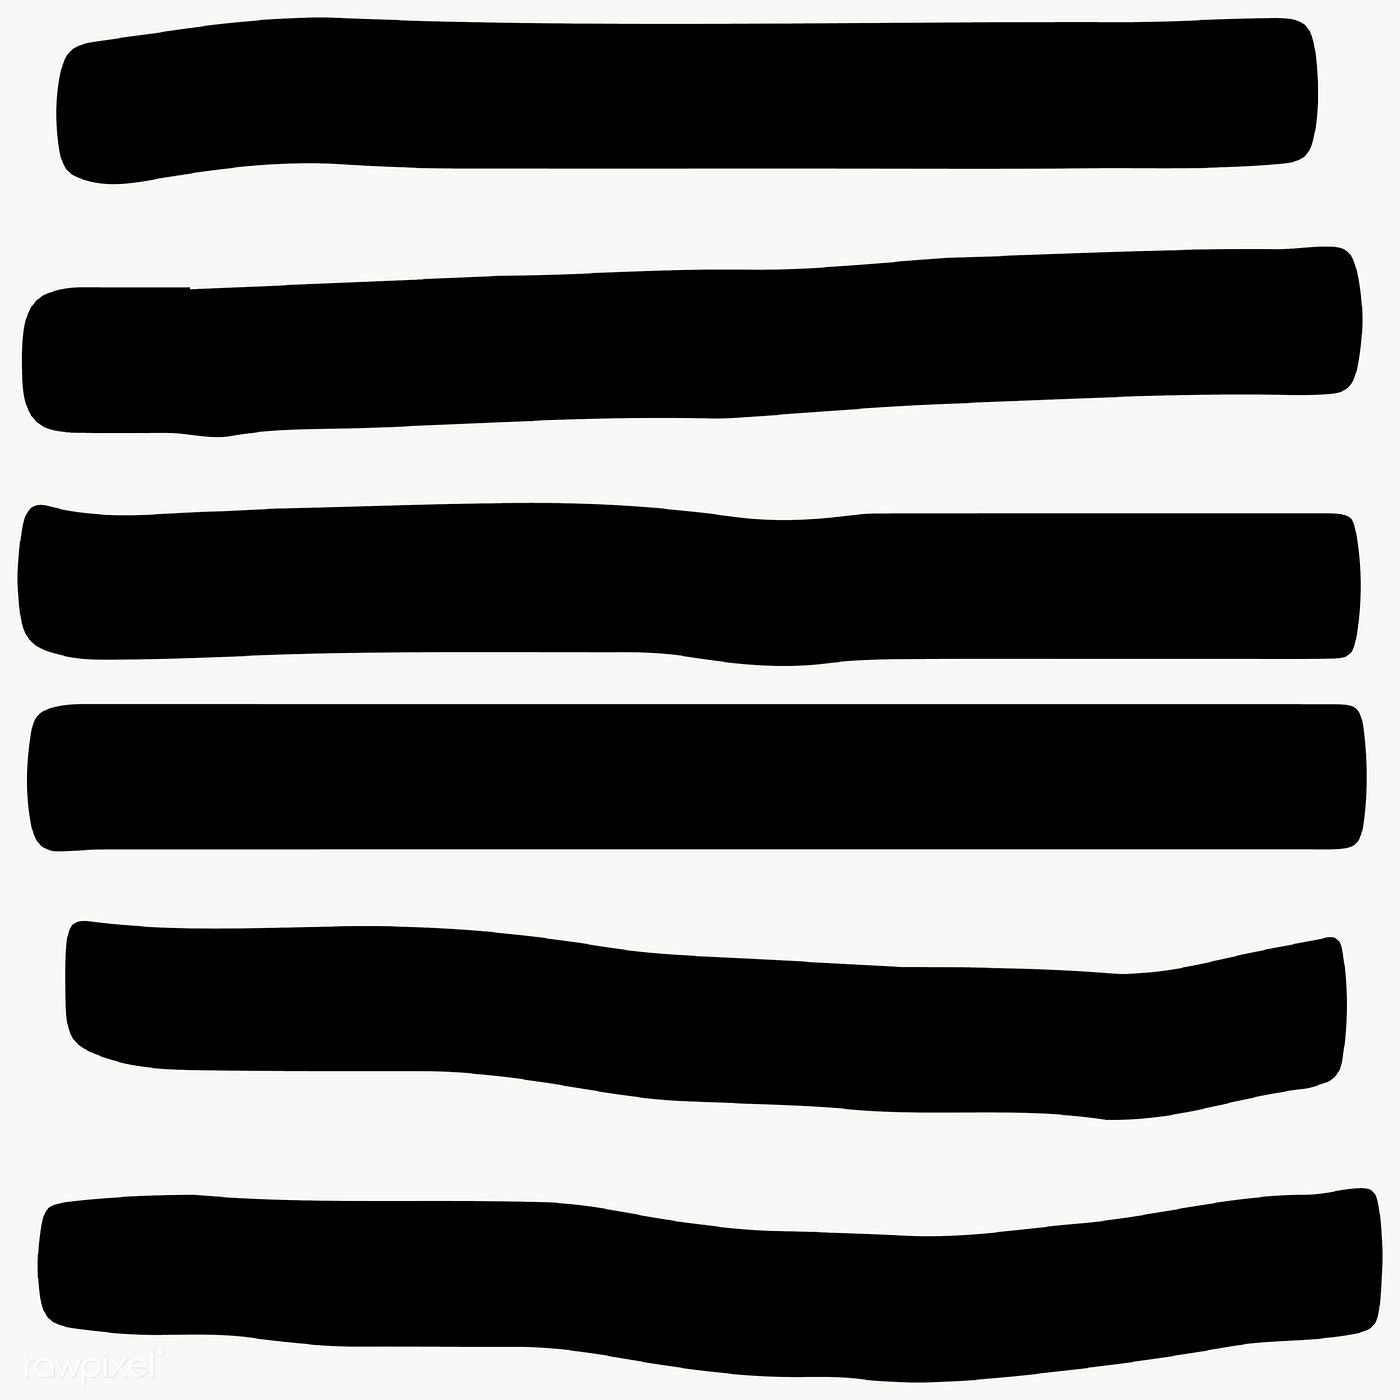 Black And White Single Line Stroke Transparent Png Free Image By Rawpixel Com Katie